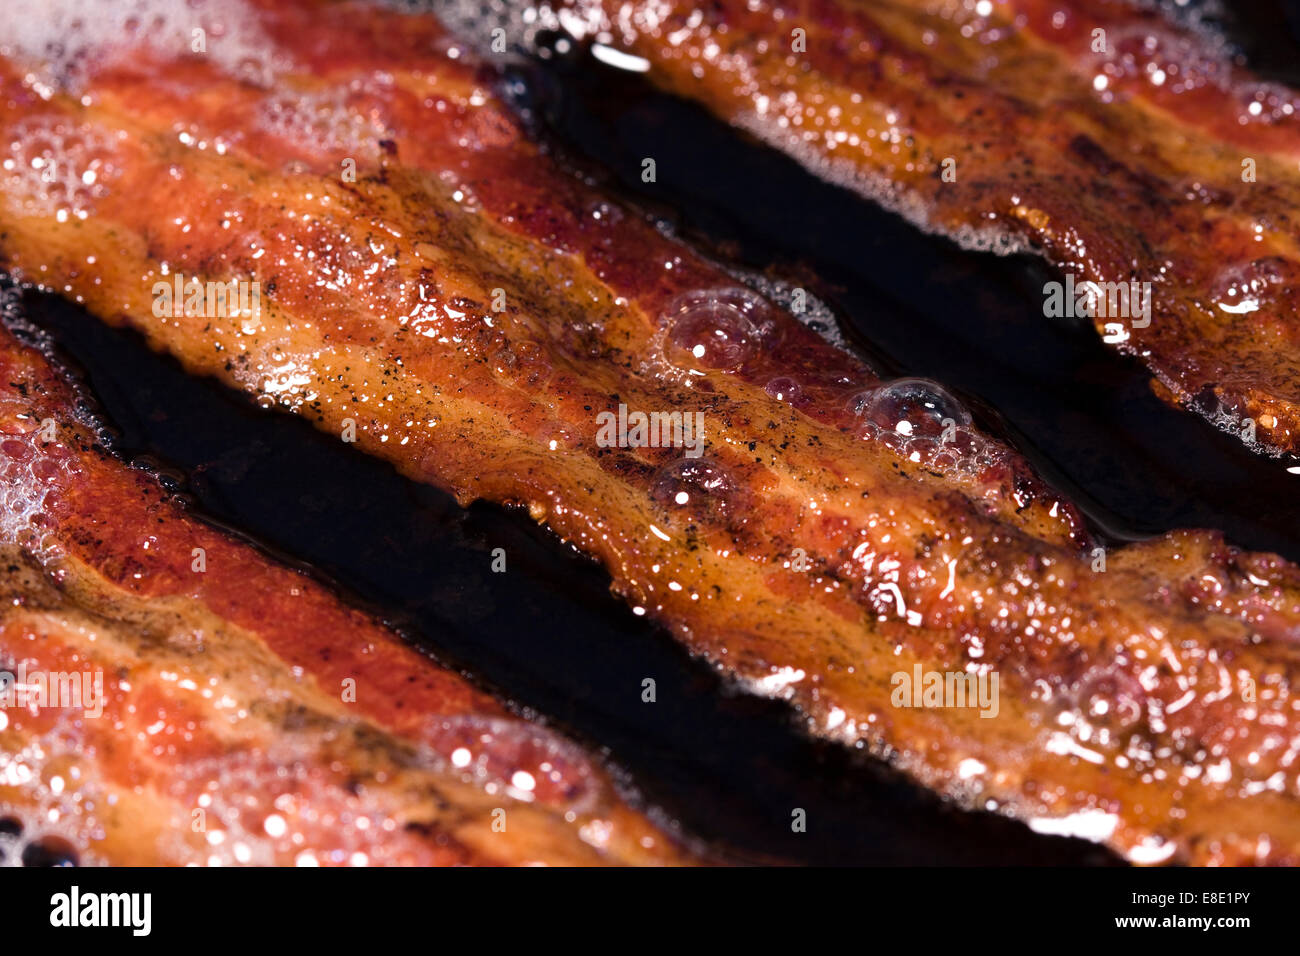 Bacon grease rendering out of strips of streaky bacon in a frying pan - Stock Image